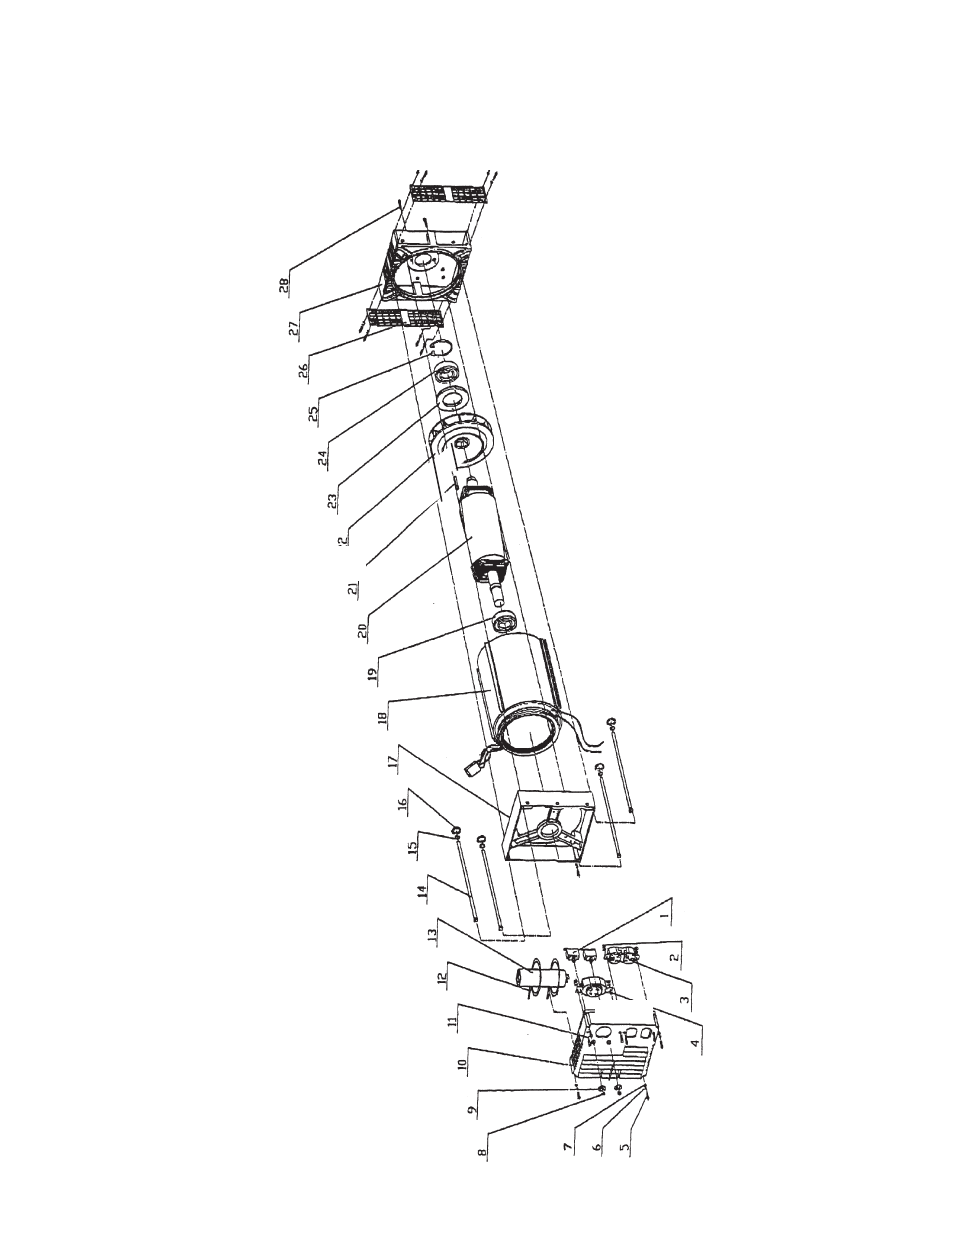 hight resolution of assembly drawing chicago electric chicago power tools 10kw generator 45416 user manual page 10 11